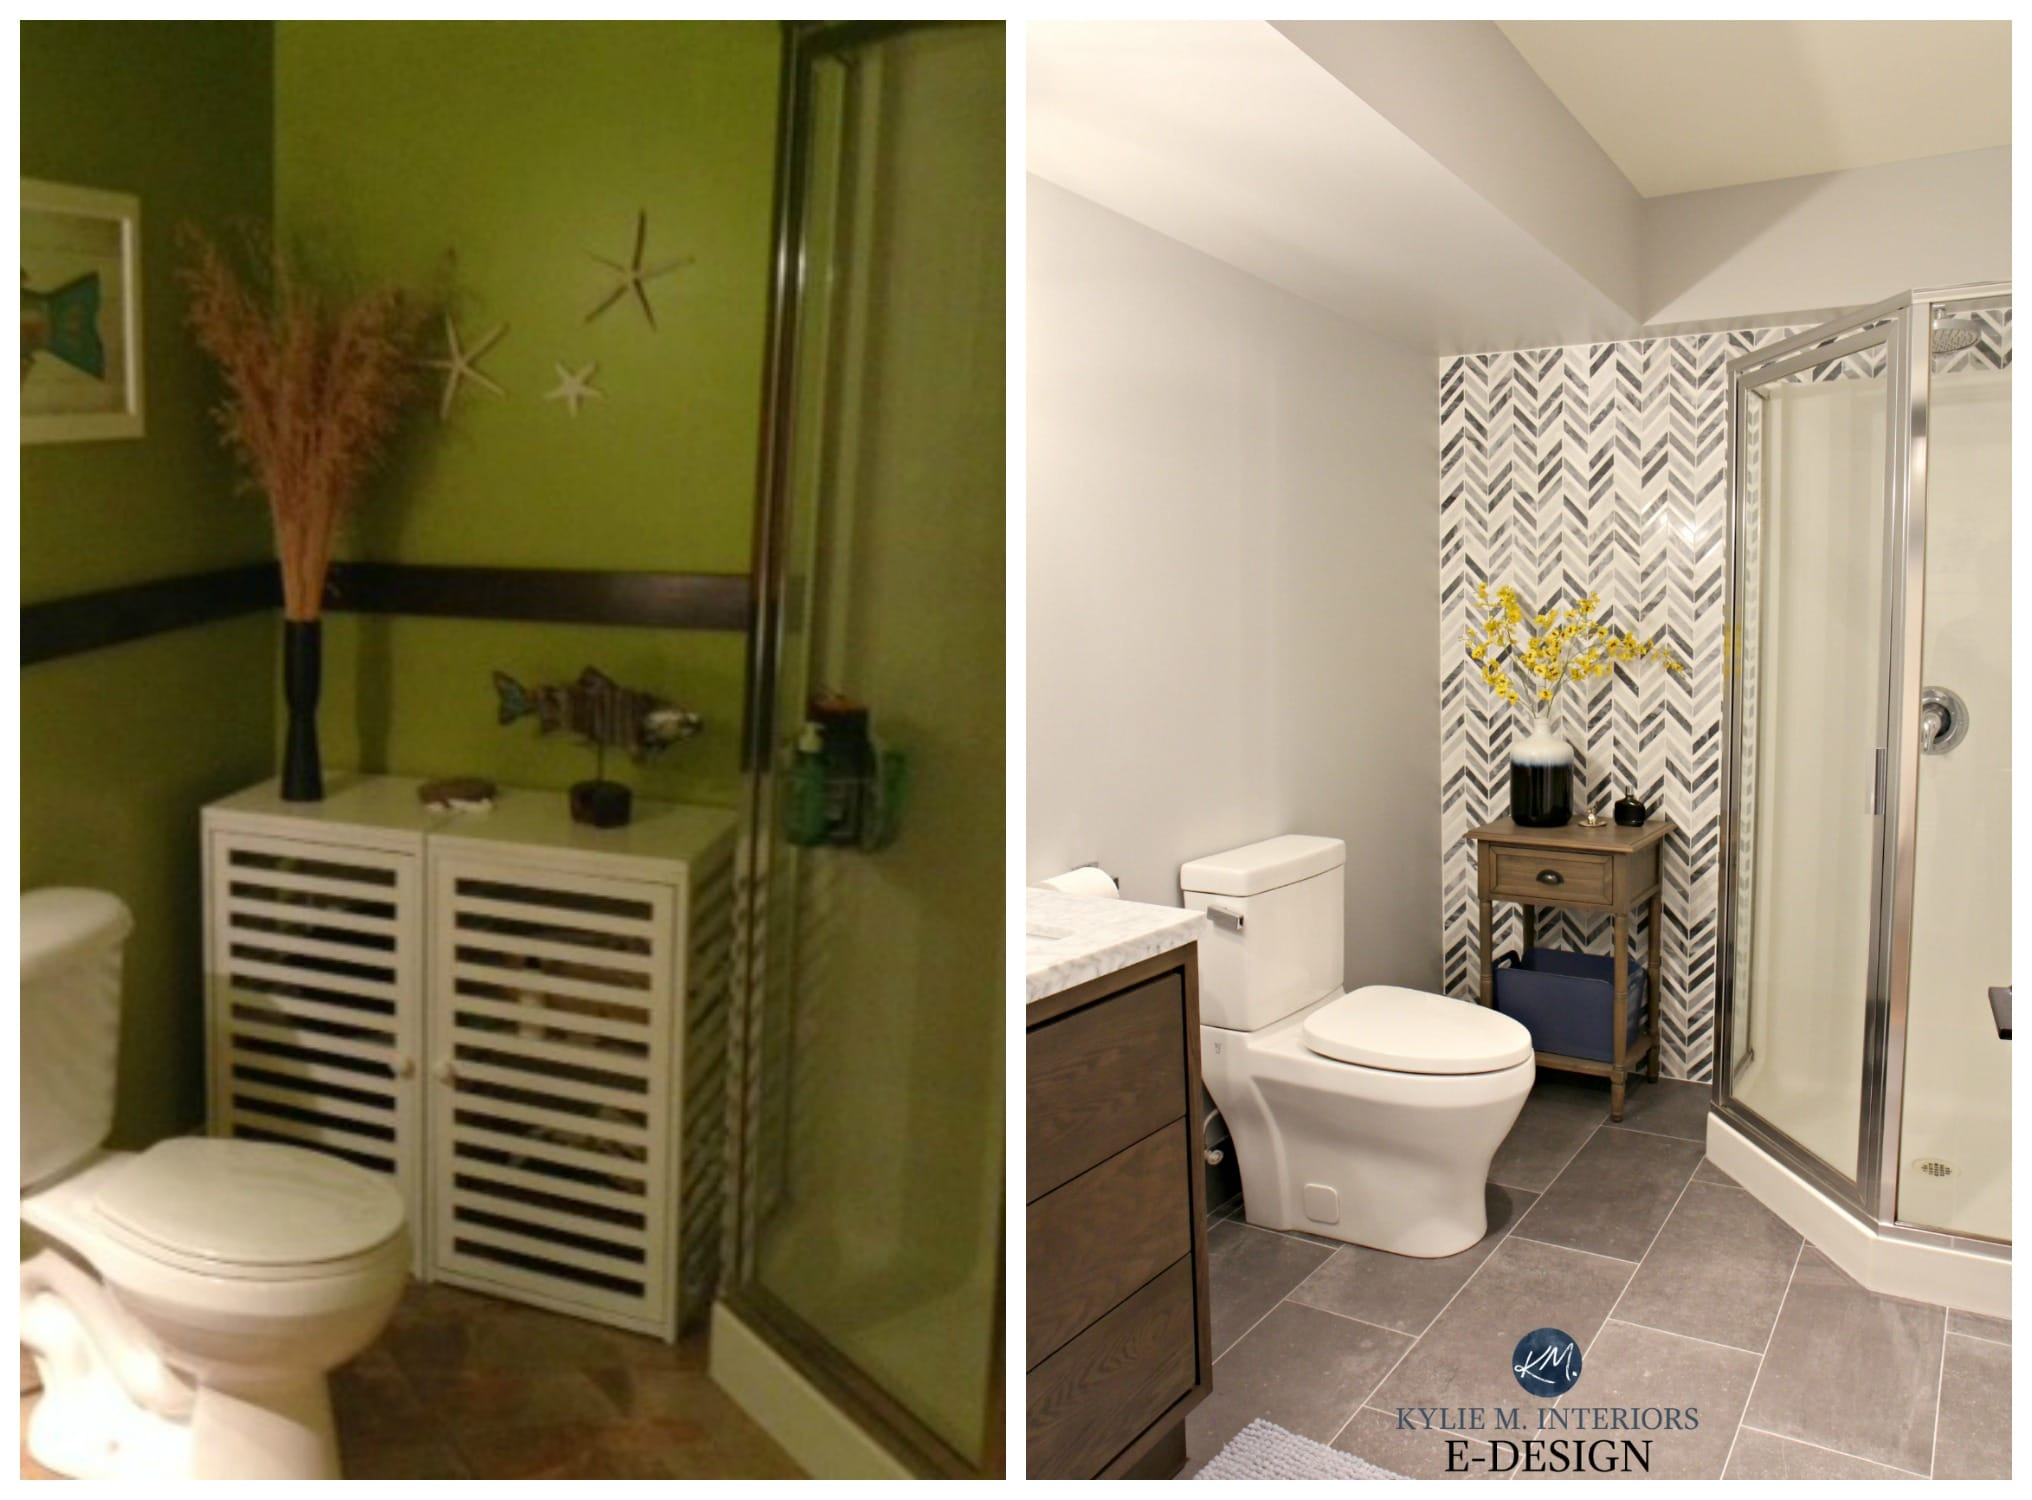 Before And After Ideas To Update Small Bathroom With Corner Shower Gray And Herringbone Marble Tile Vanity Paint Color Kylie M Interiors E Design Online Paint Color Consulting